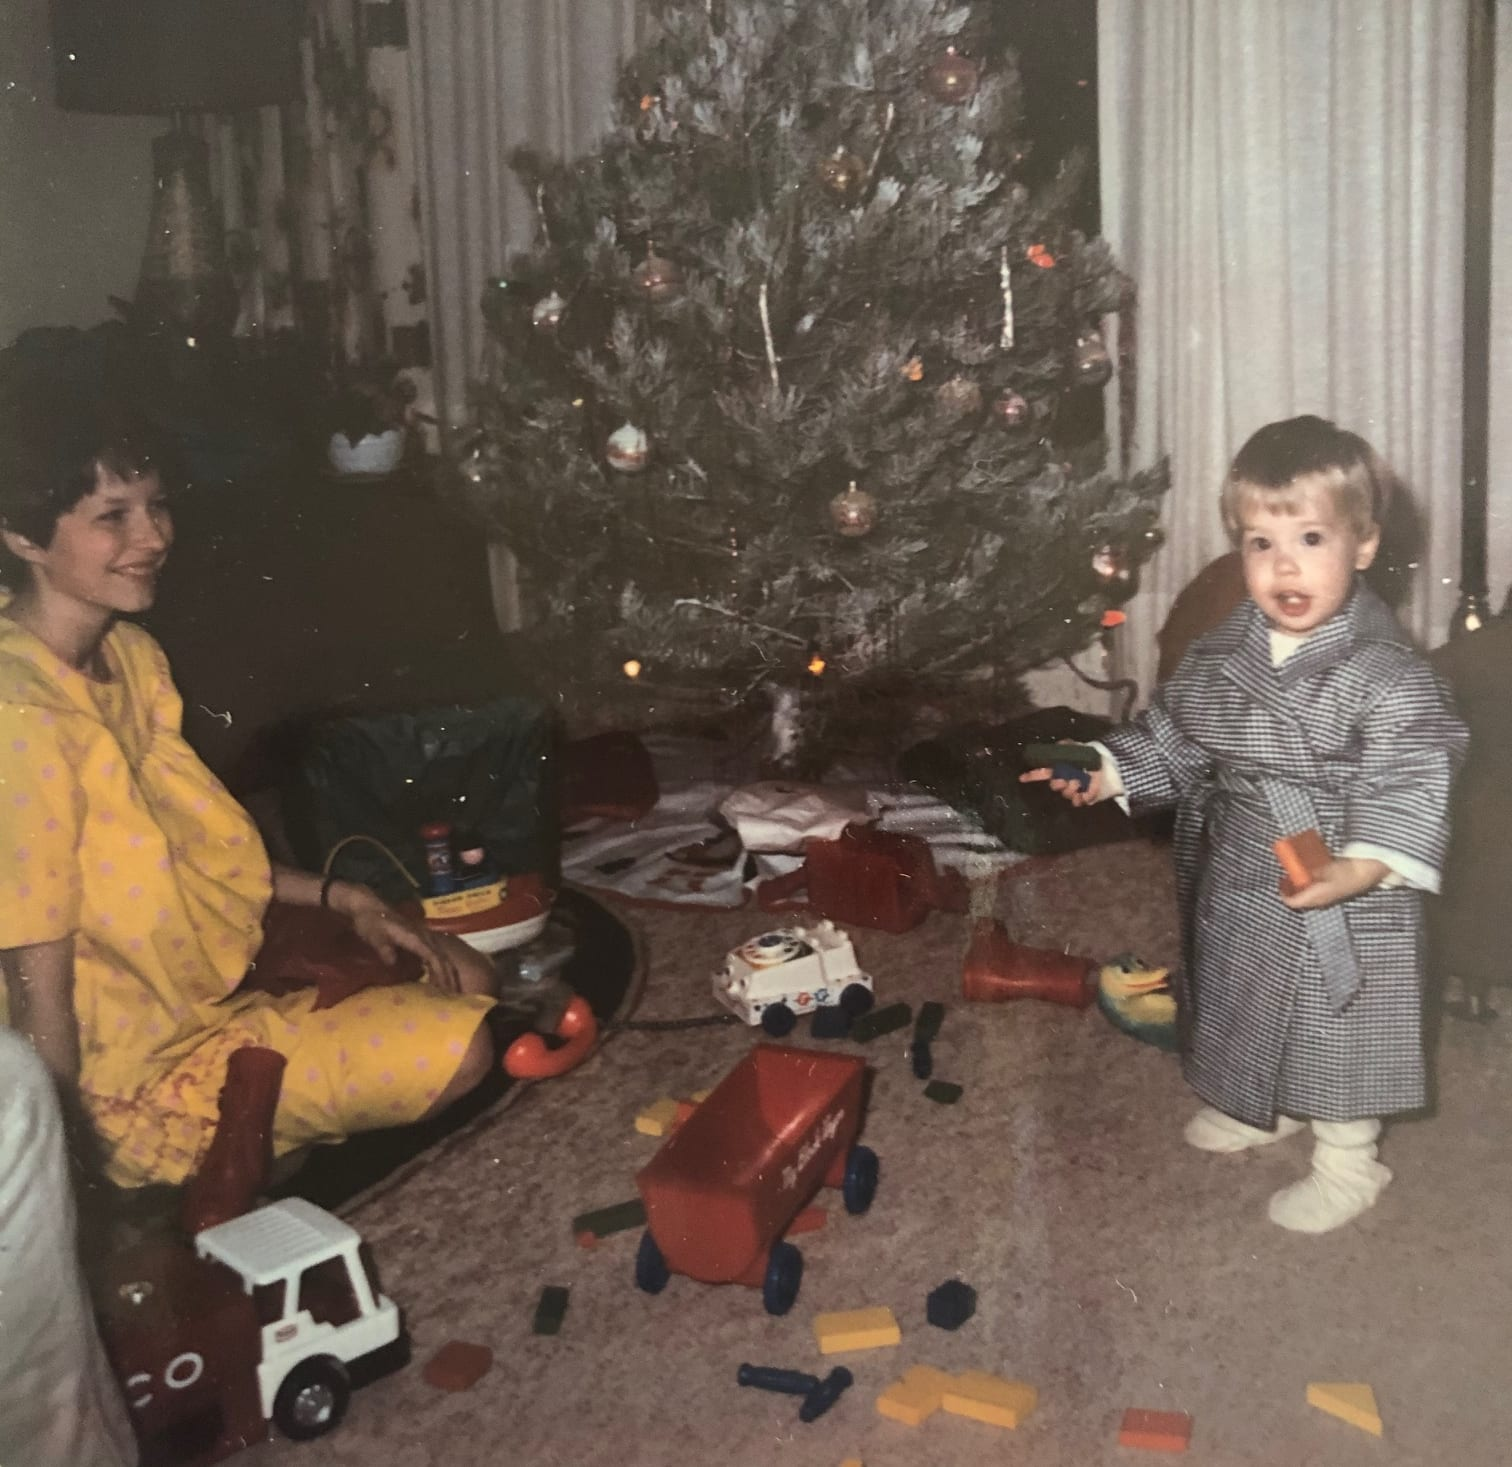 Ande and son, Thane, at Christmas. Probably 1968 or so.